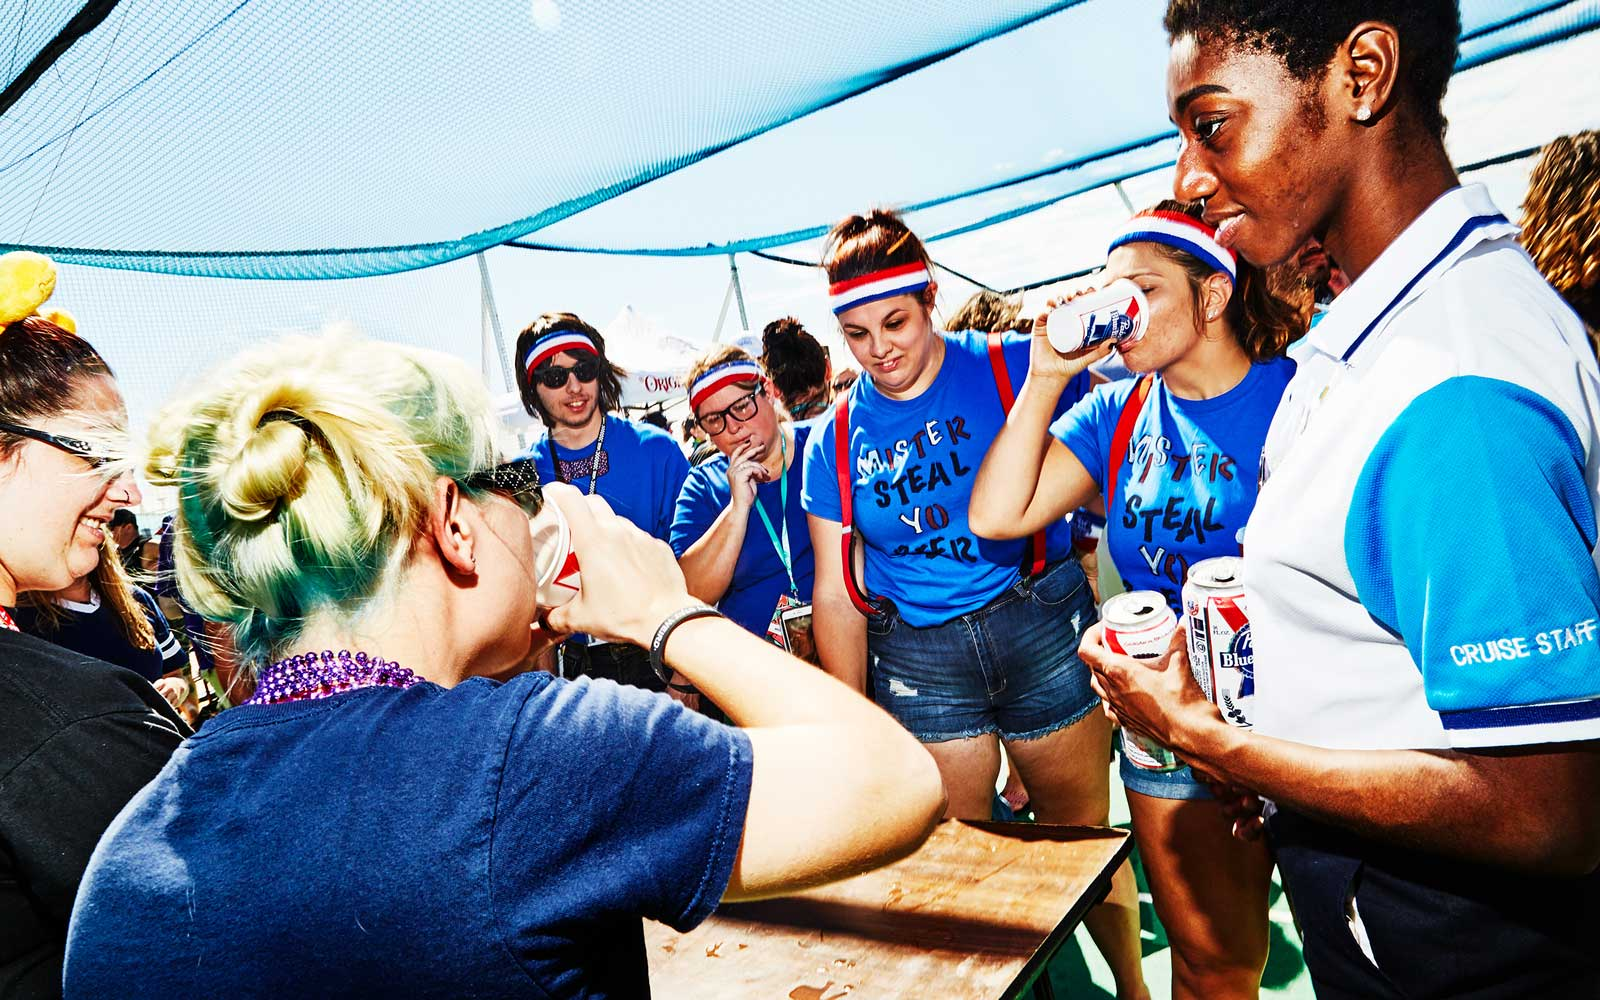 Vans Warped Tour Cruise Rewind at Sea